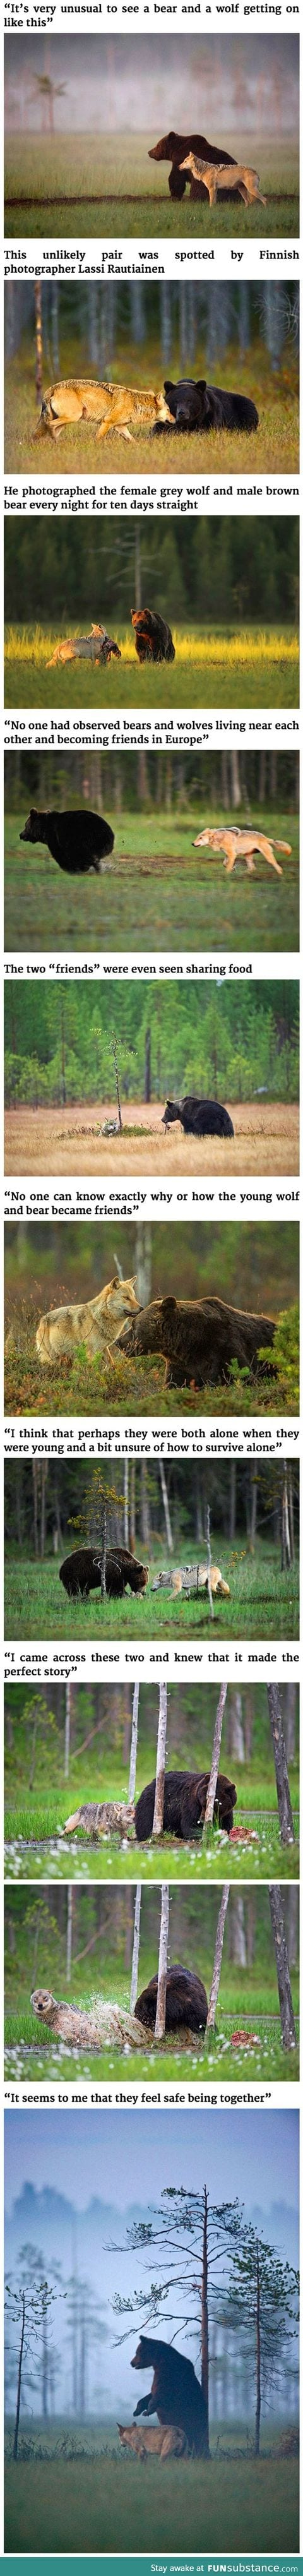 Best Friends - Bear and Wolf